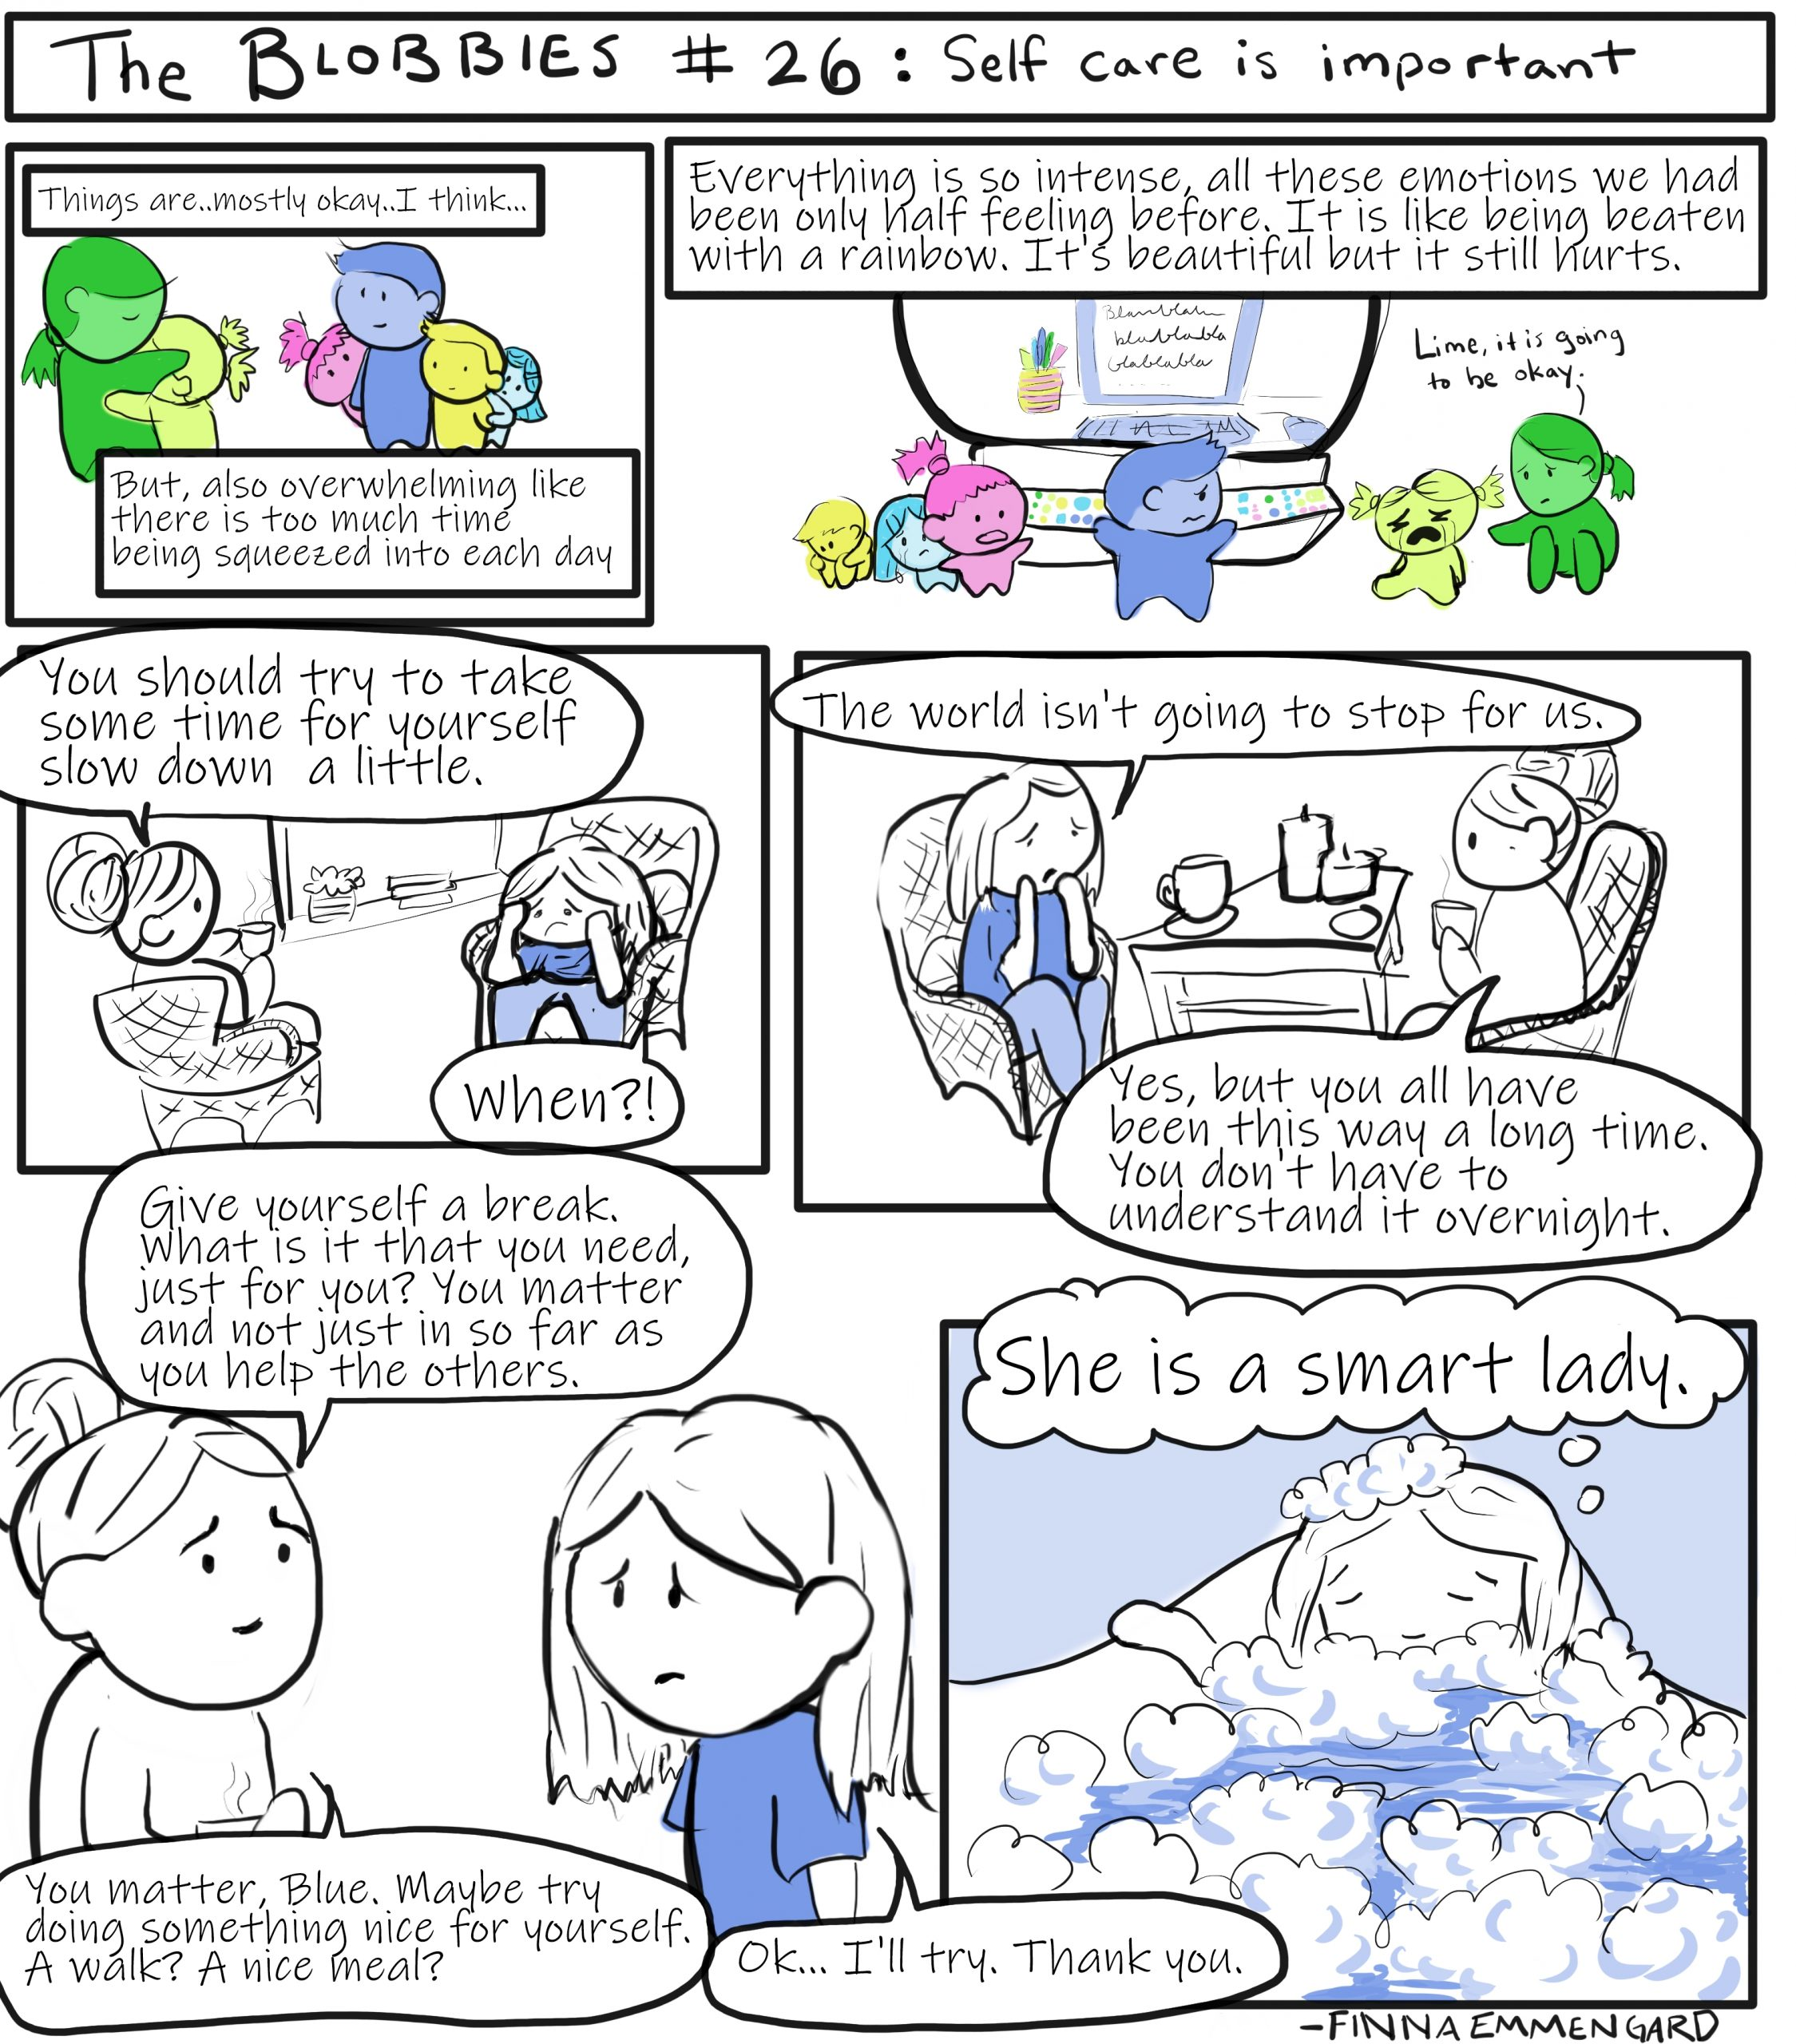 """In this episode Blue is relating recent events to the therapist, while in teh background of the scenes we see flashbacks to what Blue has been dealing with lately: Lime coming back with them and embracing Green, Blue trying to work as Lime is crying and Green is trying to comfort her. Blue: Things are mostly okay.... I think... But, also, overwhelming, like there is too much time being squeezed into each day. Everything is so intense, all these emotions we had only been half feeling before. it is like being beaten with a rainbow. It is beautiful but it still hurts. Therapist: You should try to take some time for yourself, slow down. Blue: When?! The world is not going to stop for us. Therapist: Yes, but you all have been this way a long time. You don't have to understand it overnight. Give yourself a break. What is it that you need, just for you? You matter and not just in so far as you help the others. You matter, Blue. Maybe try doing something nice for yourself. A walk? A nice meal? Blue: Okay I'll try. Thank you. The final frame shows Blue taking a bath and thinking to himself """"She is a smart lady."""""""